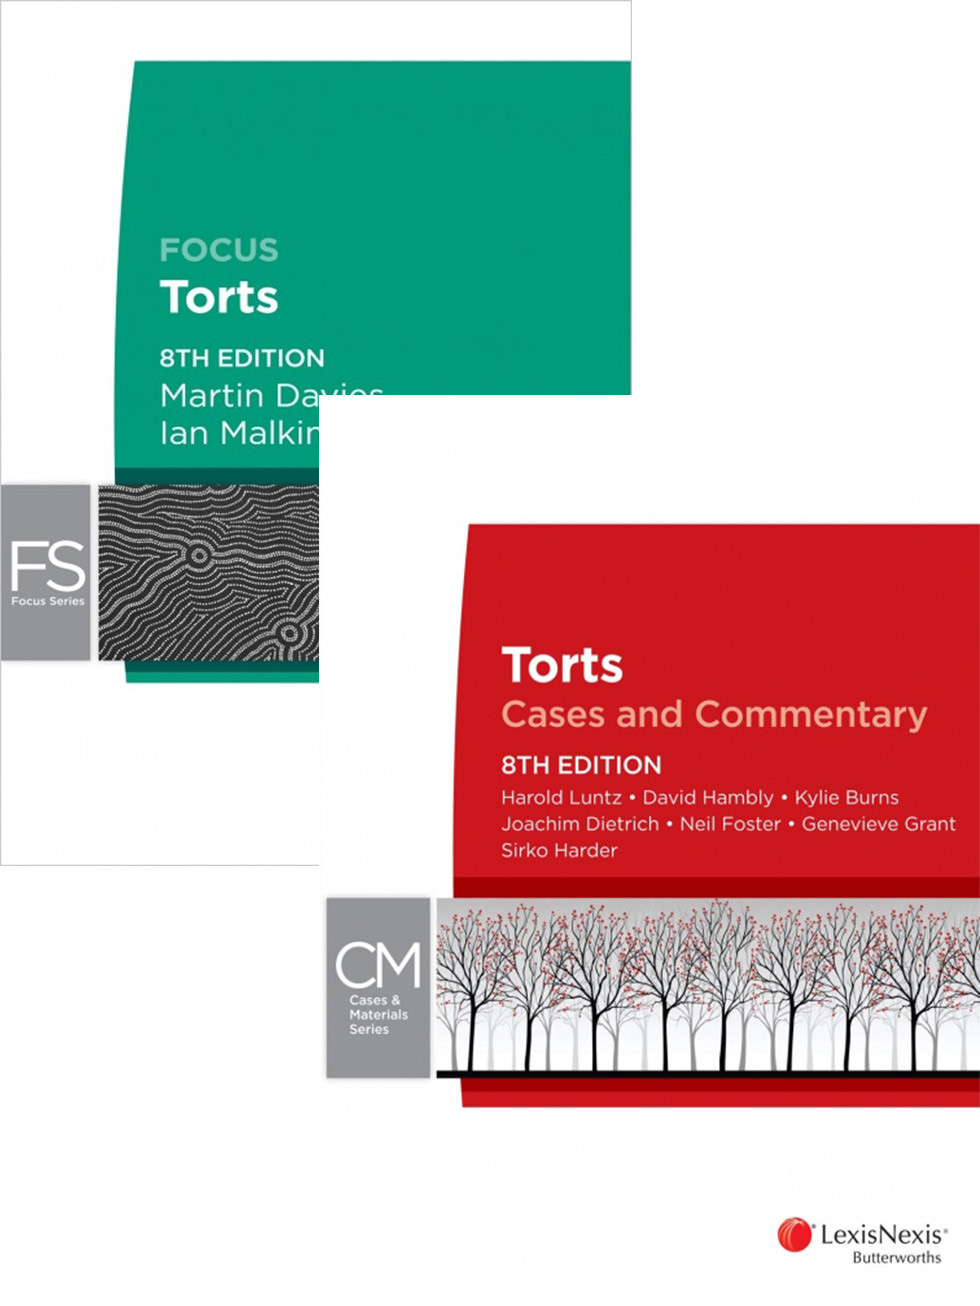 Torts: Cases and Commentary 8th edition + Focus Torts 8th edition  by Luntz & Davies, ISBN: 9780001181205